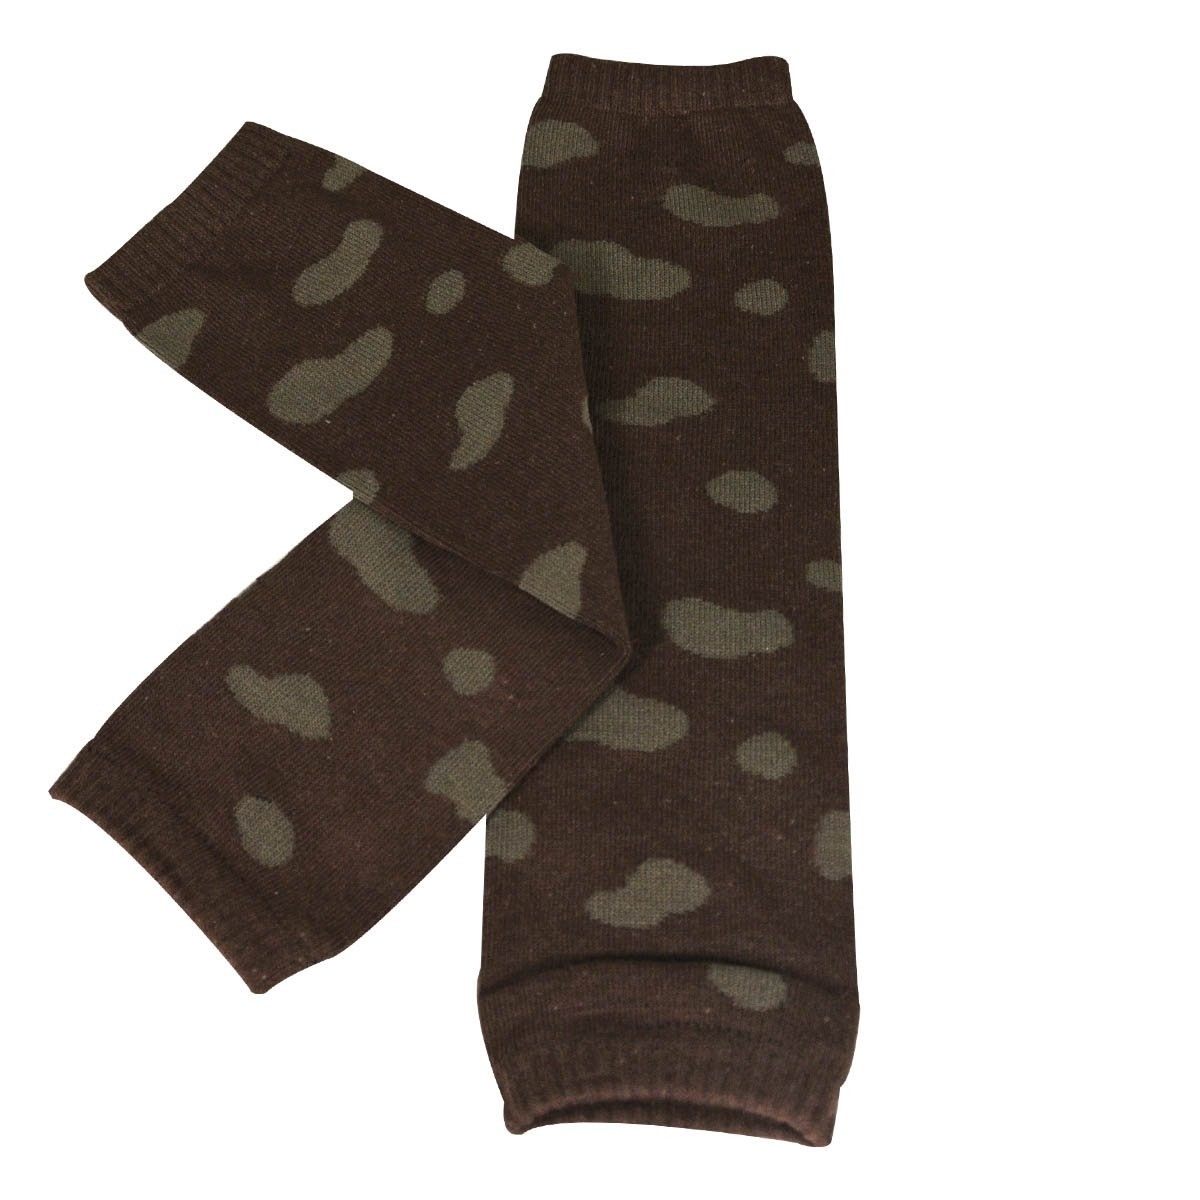 Animal Print /& Ruched Wrapables Colorful Baby Leg Warmers Set of 2